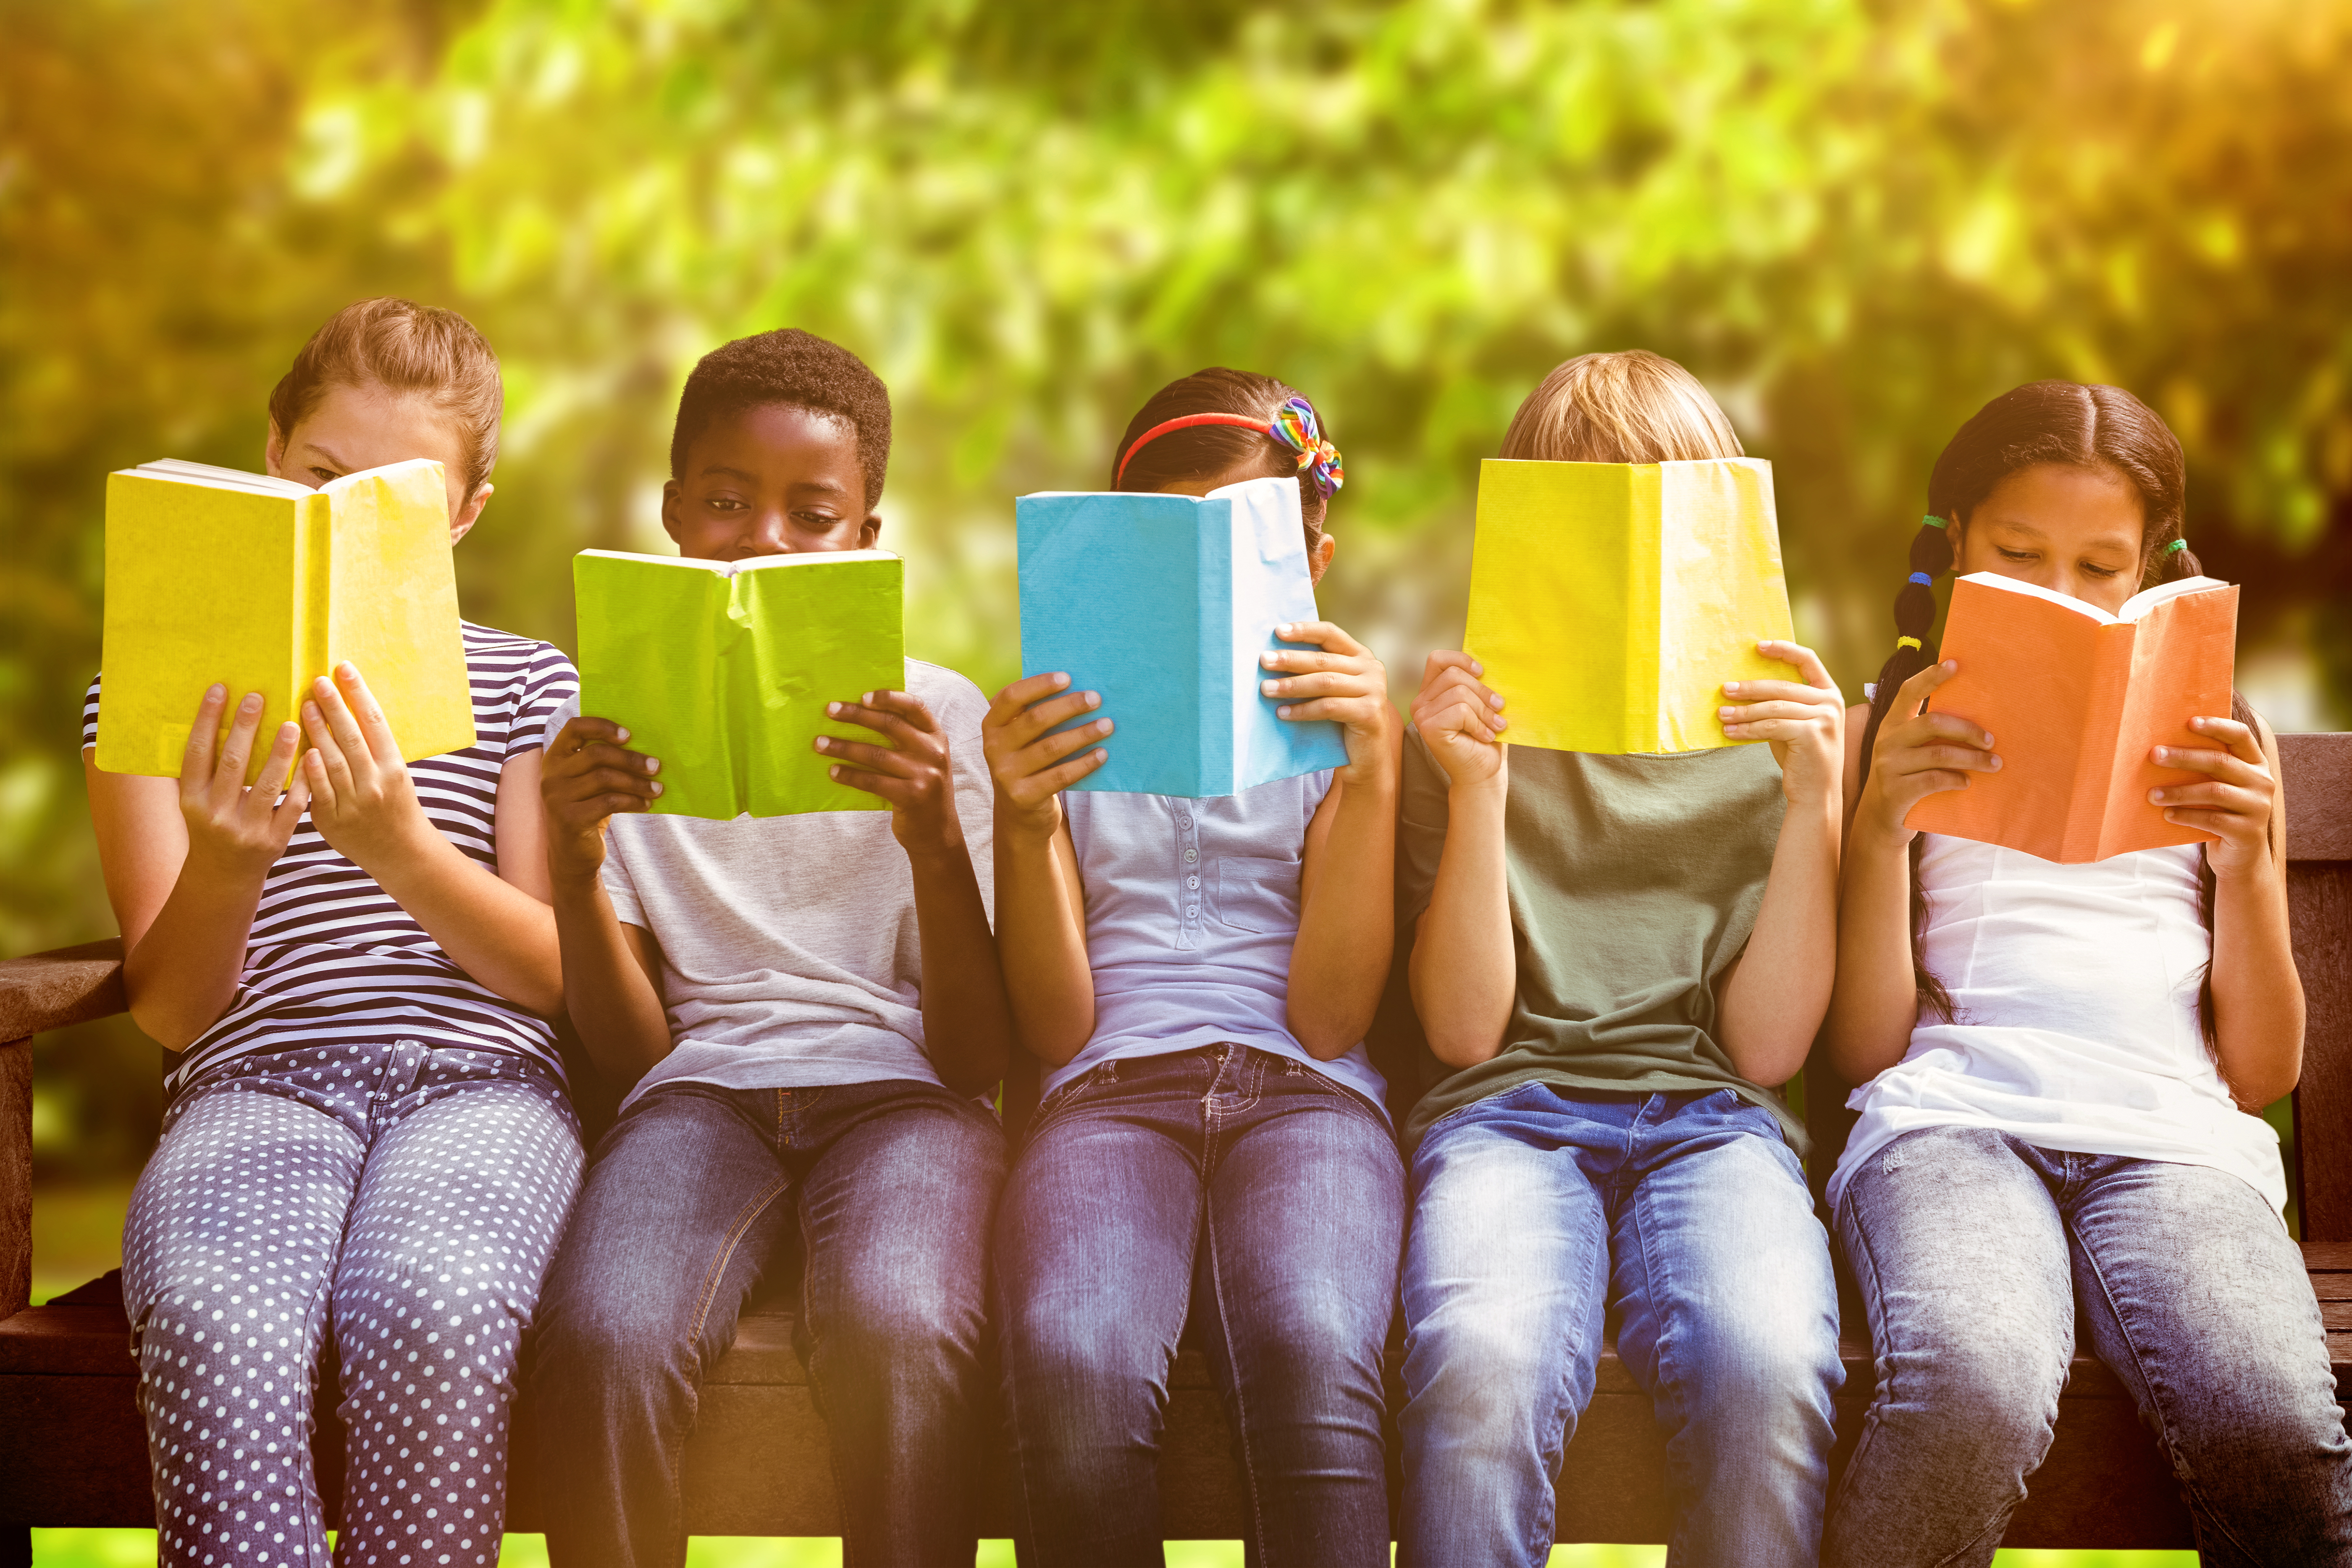 children sitting in a row reading books